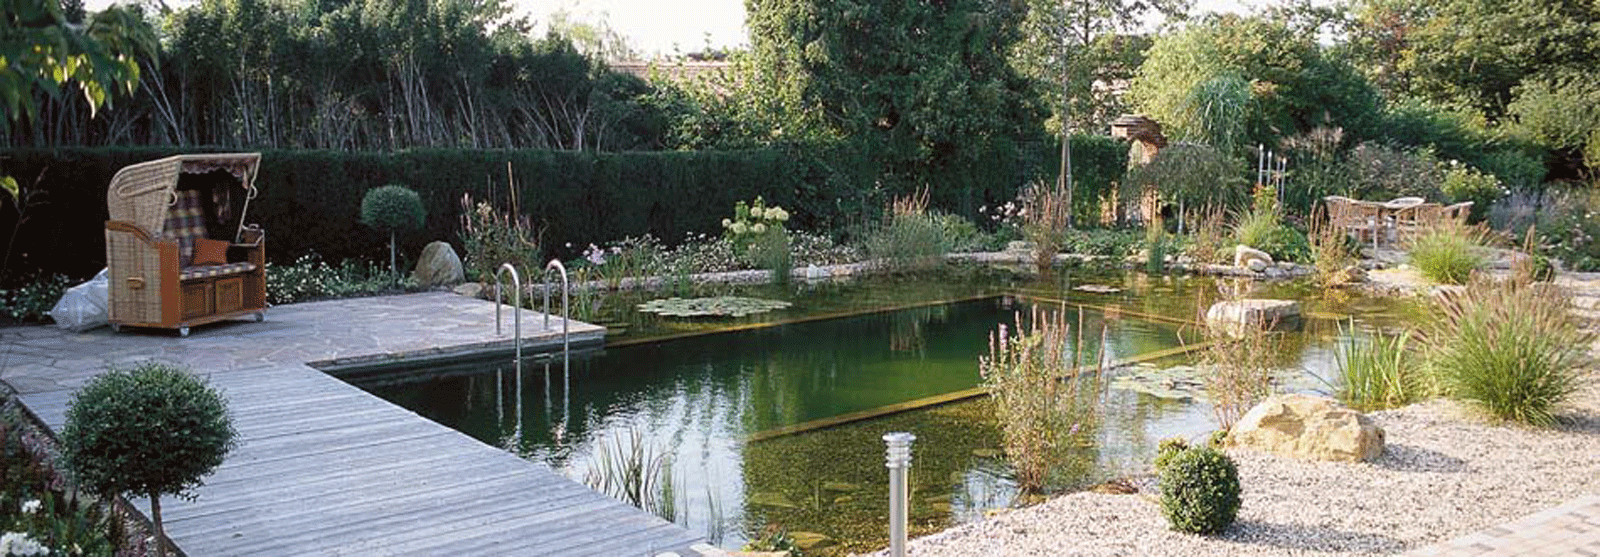 Natural swimming natural swimming pools for Pond to swimming pool conversions